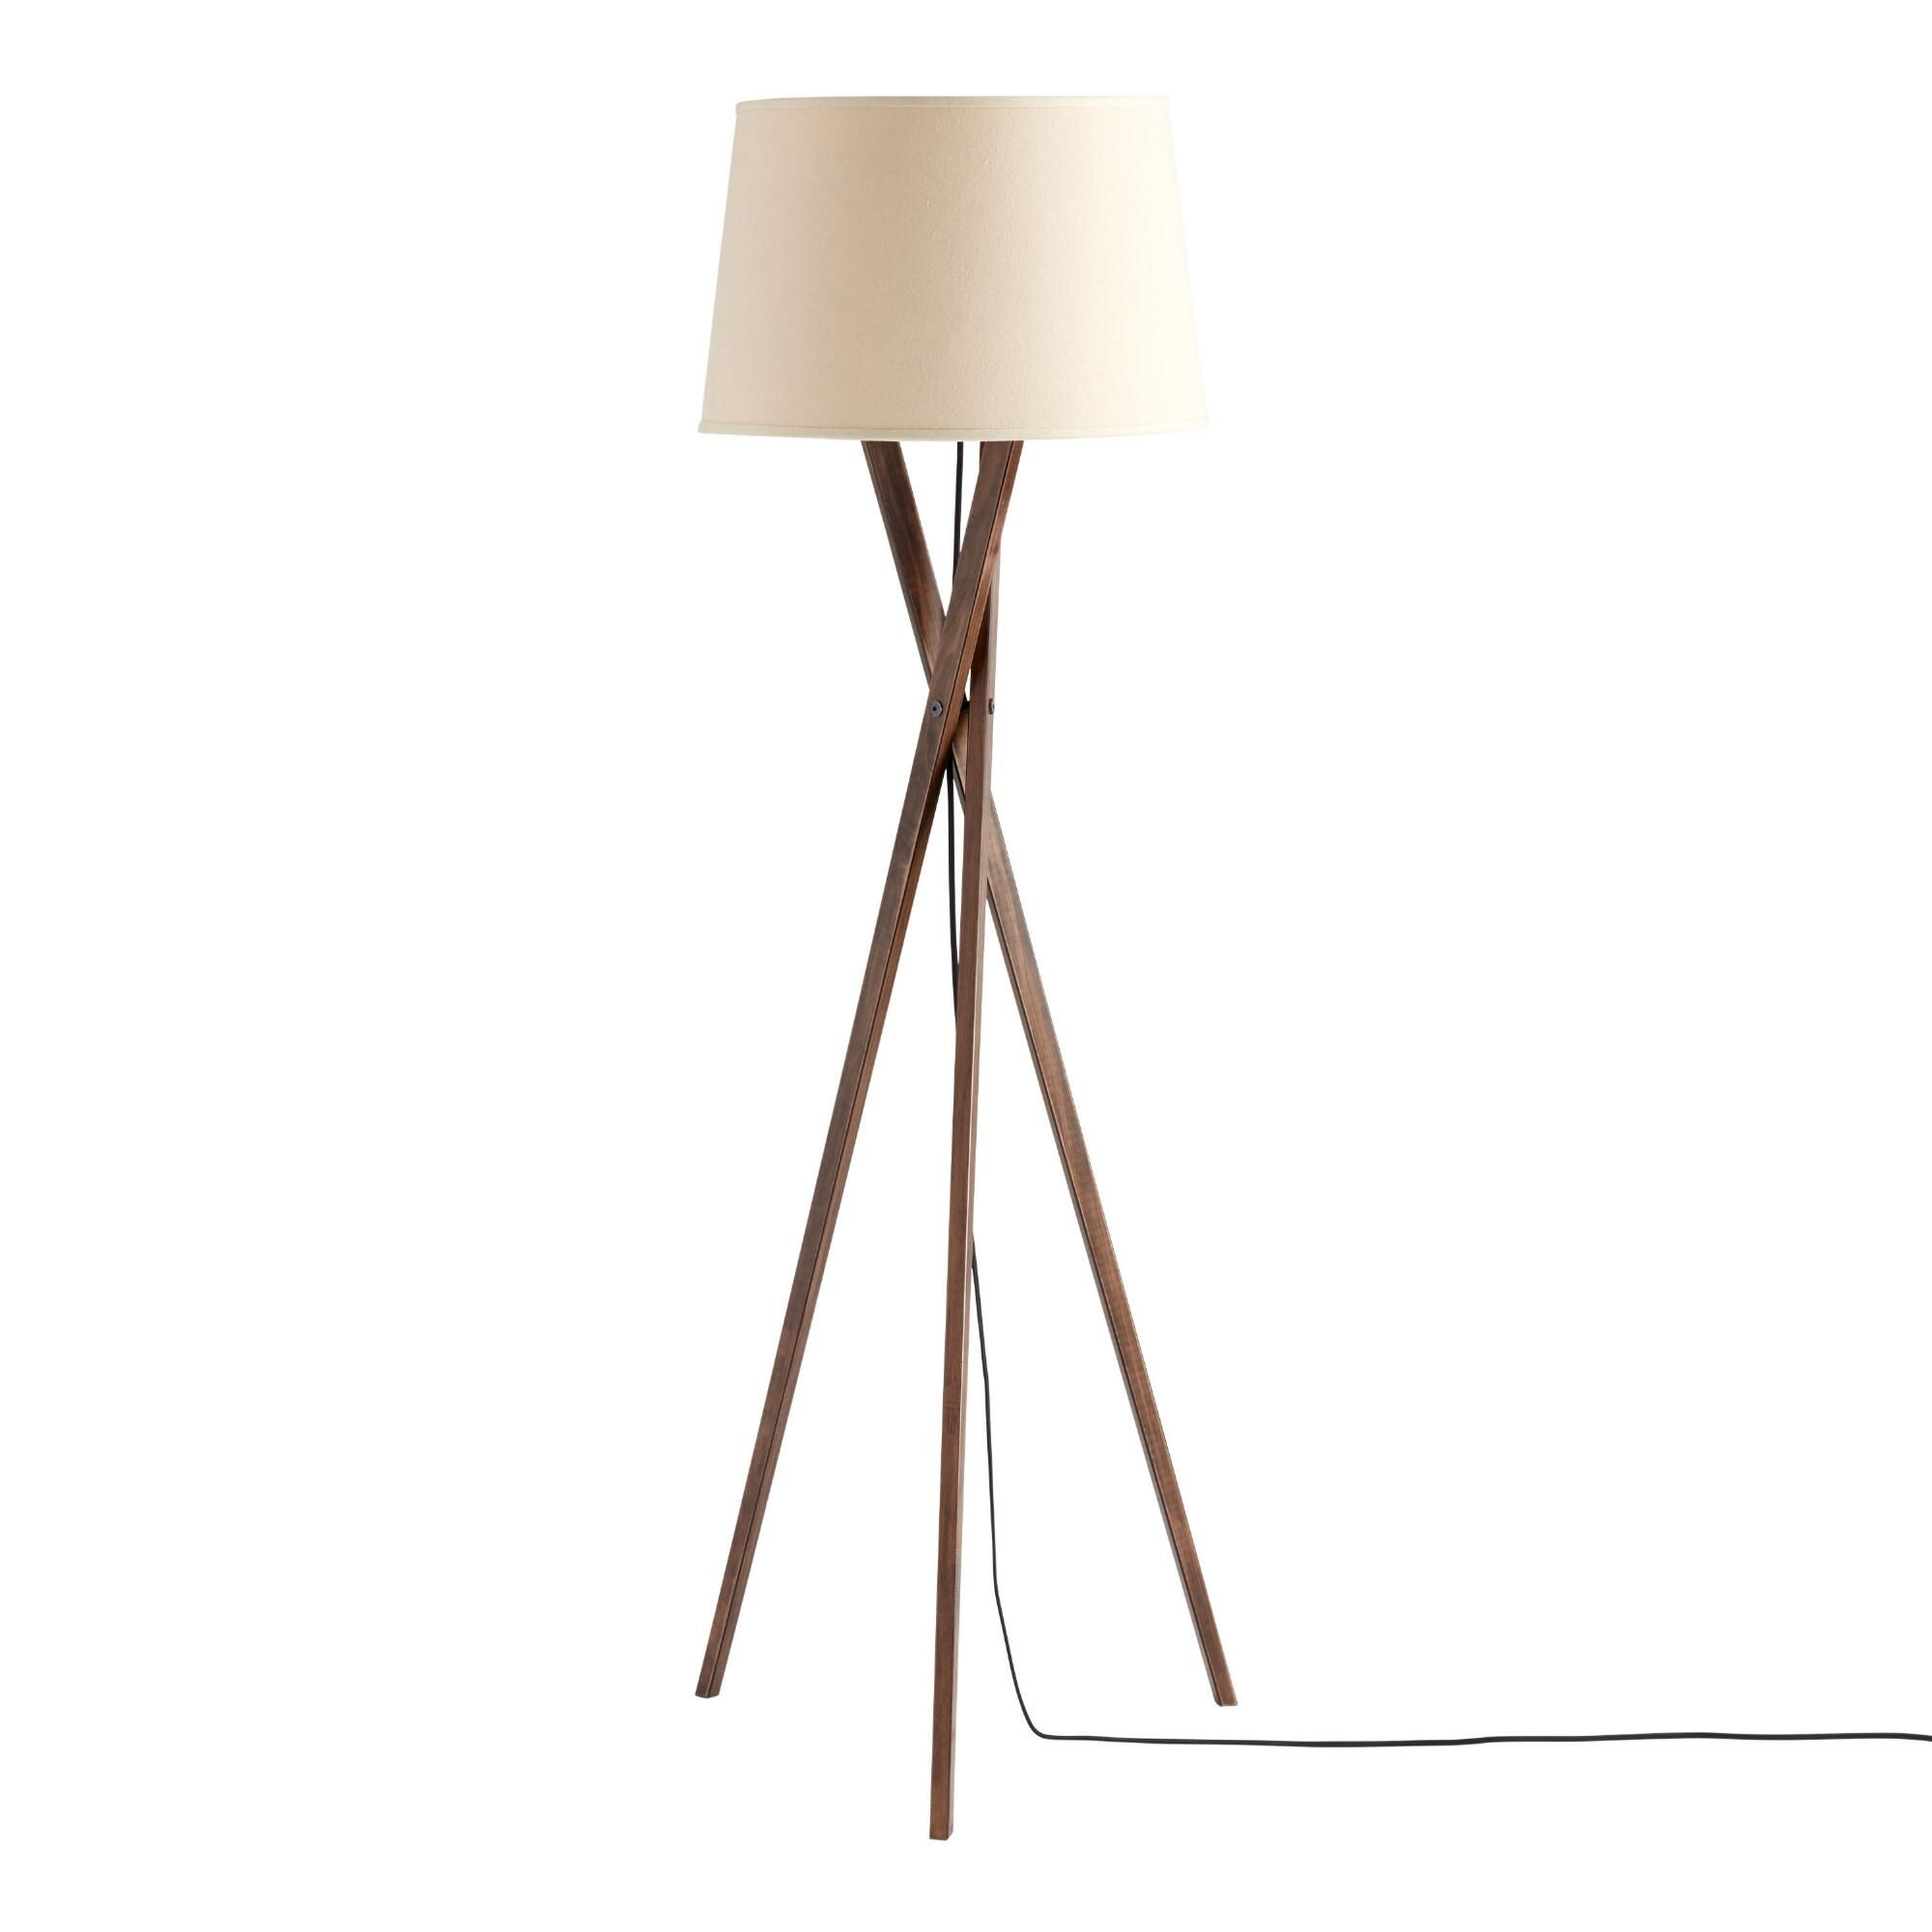 Walnut Wood Tripod Austin Floor Lamp Base World Market In 2020 Floor Lamp Base Tripod Floor Lamps Floor Lamp